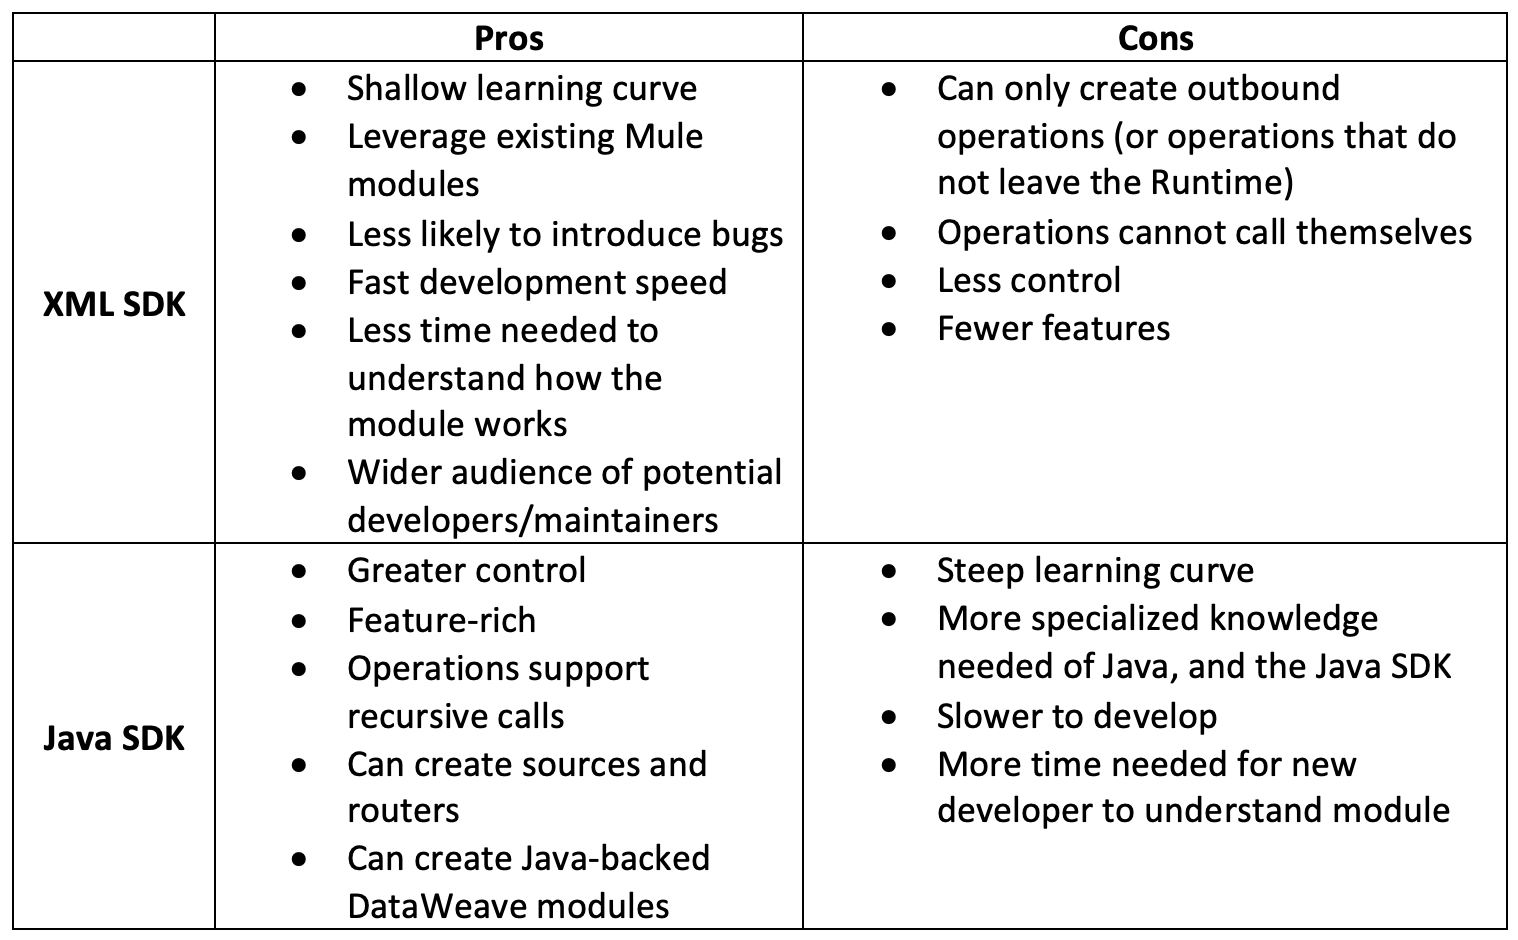 xml-java-pros-cons-table